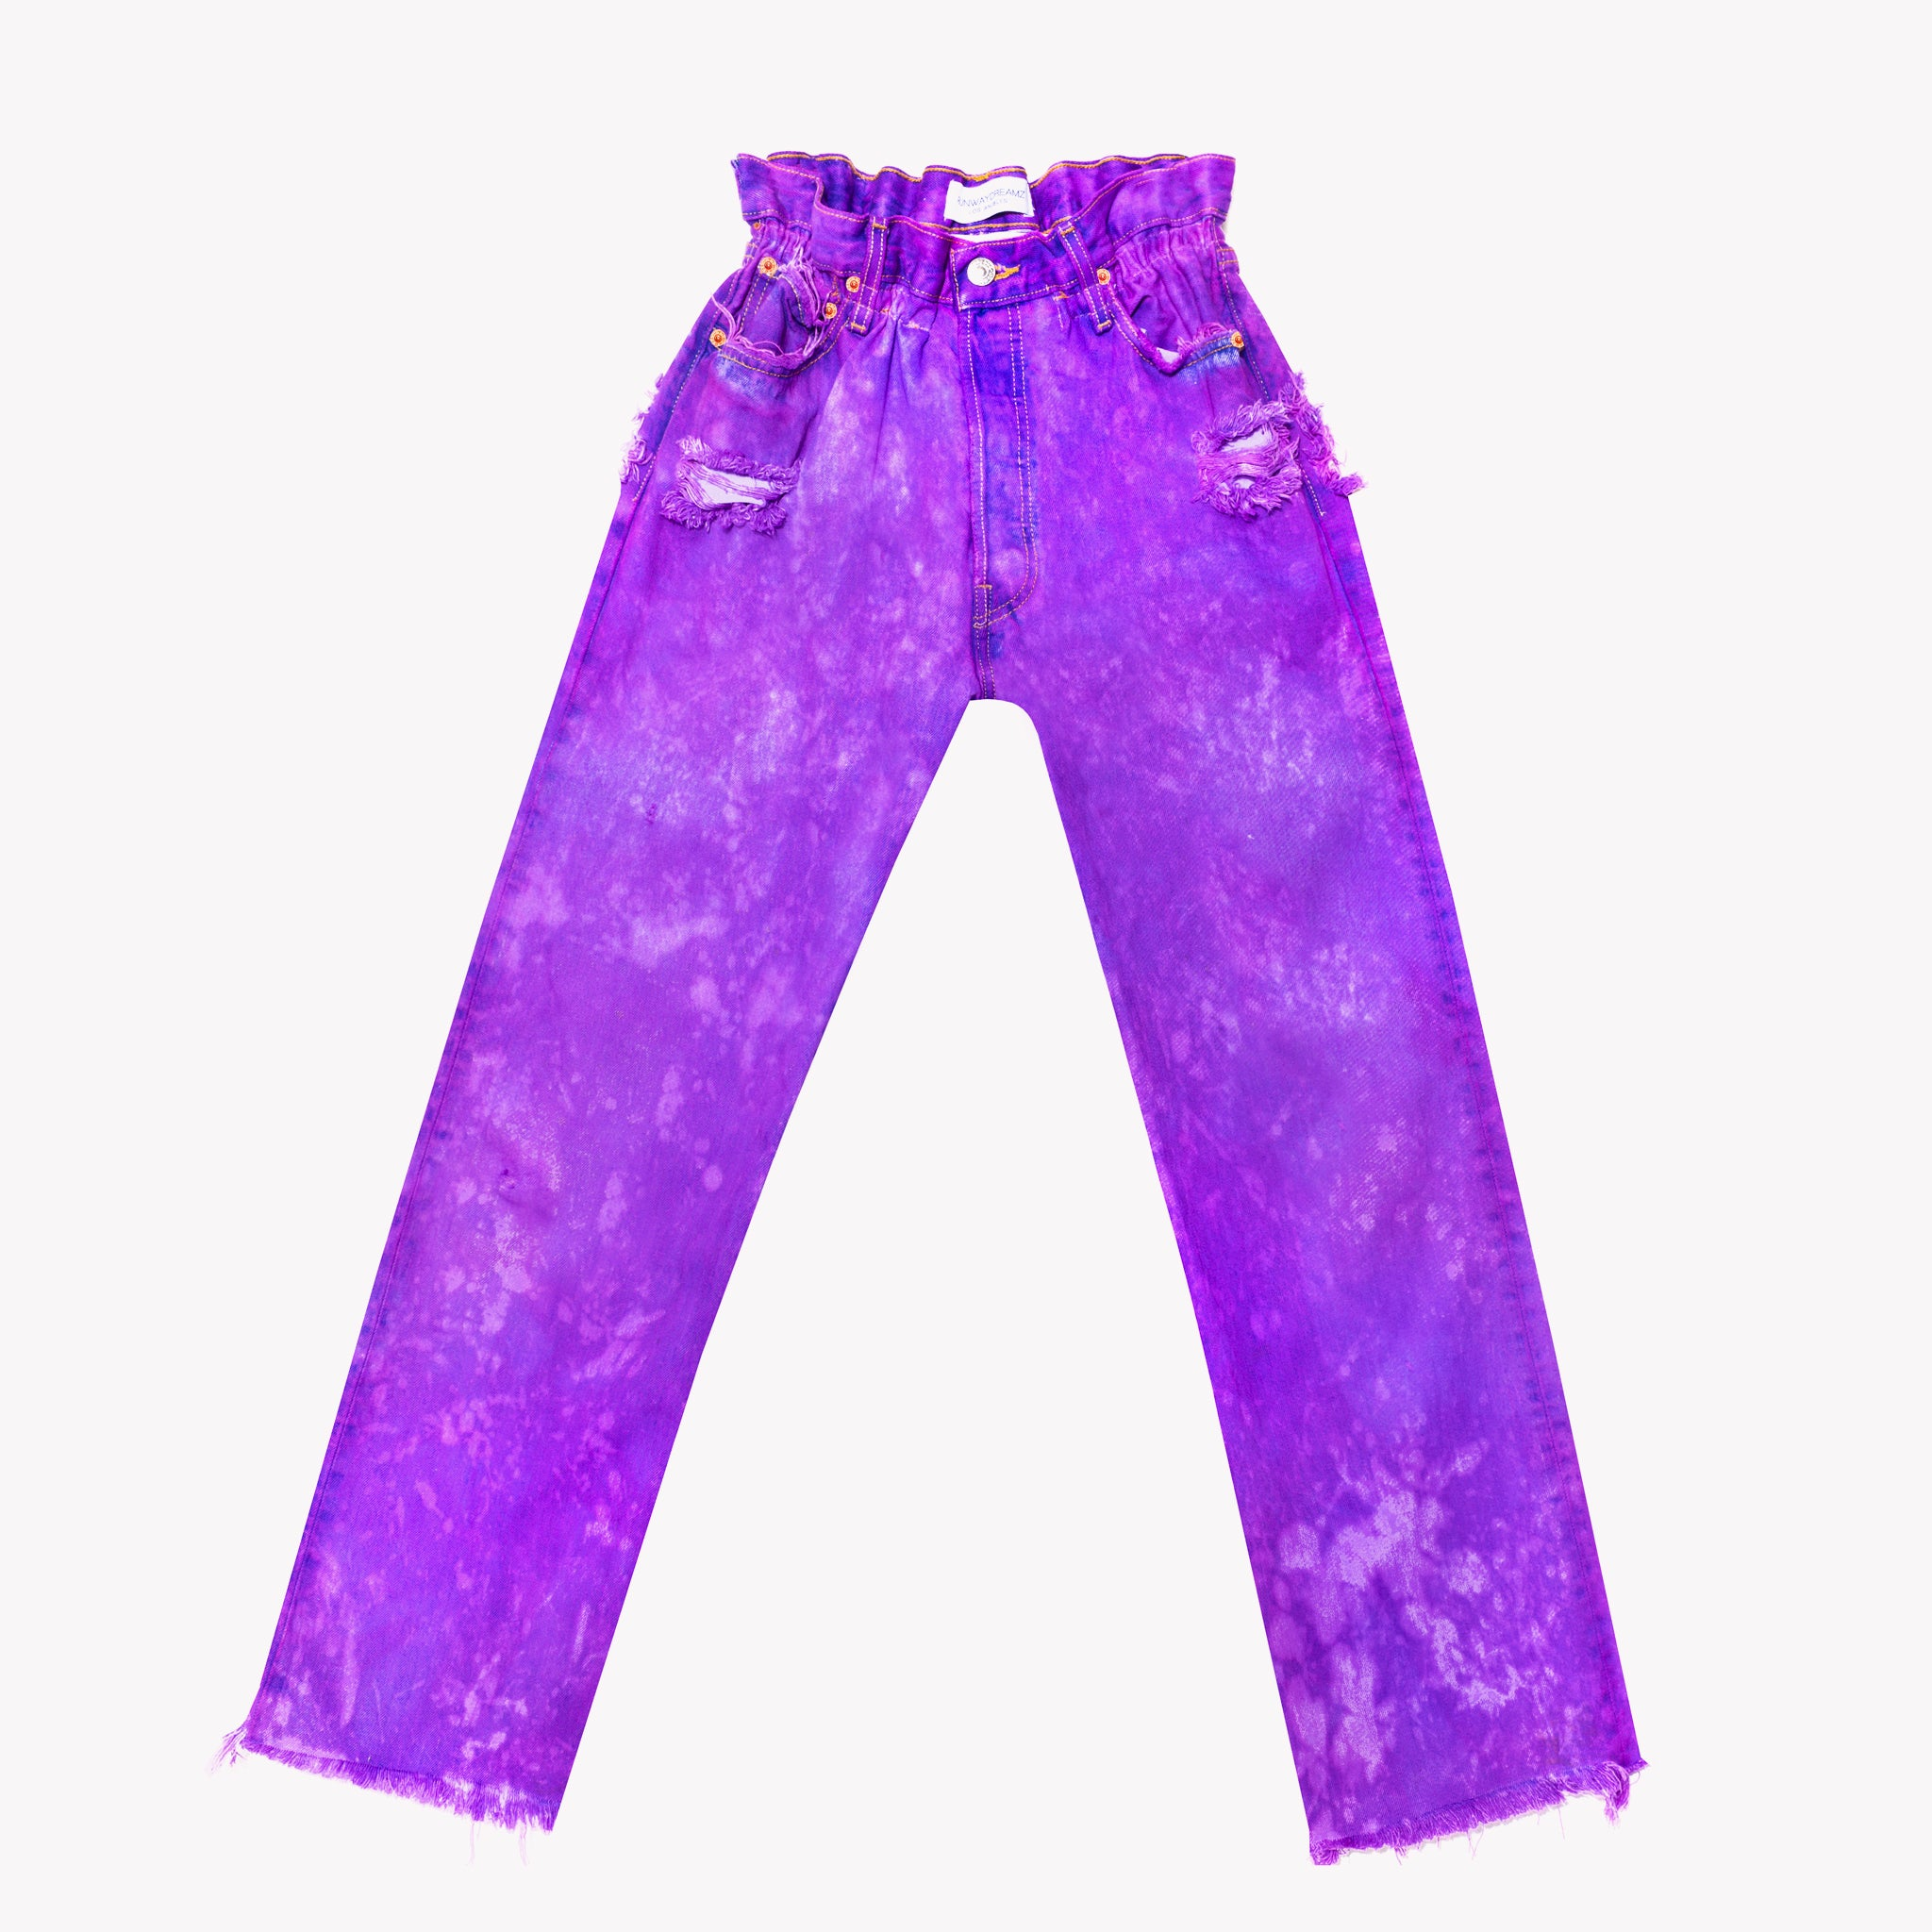 Boho Purple Clouds Vintage High Waisted Jeans